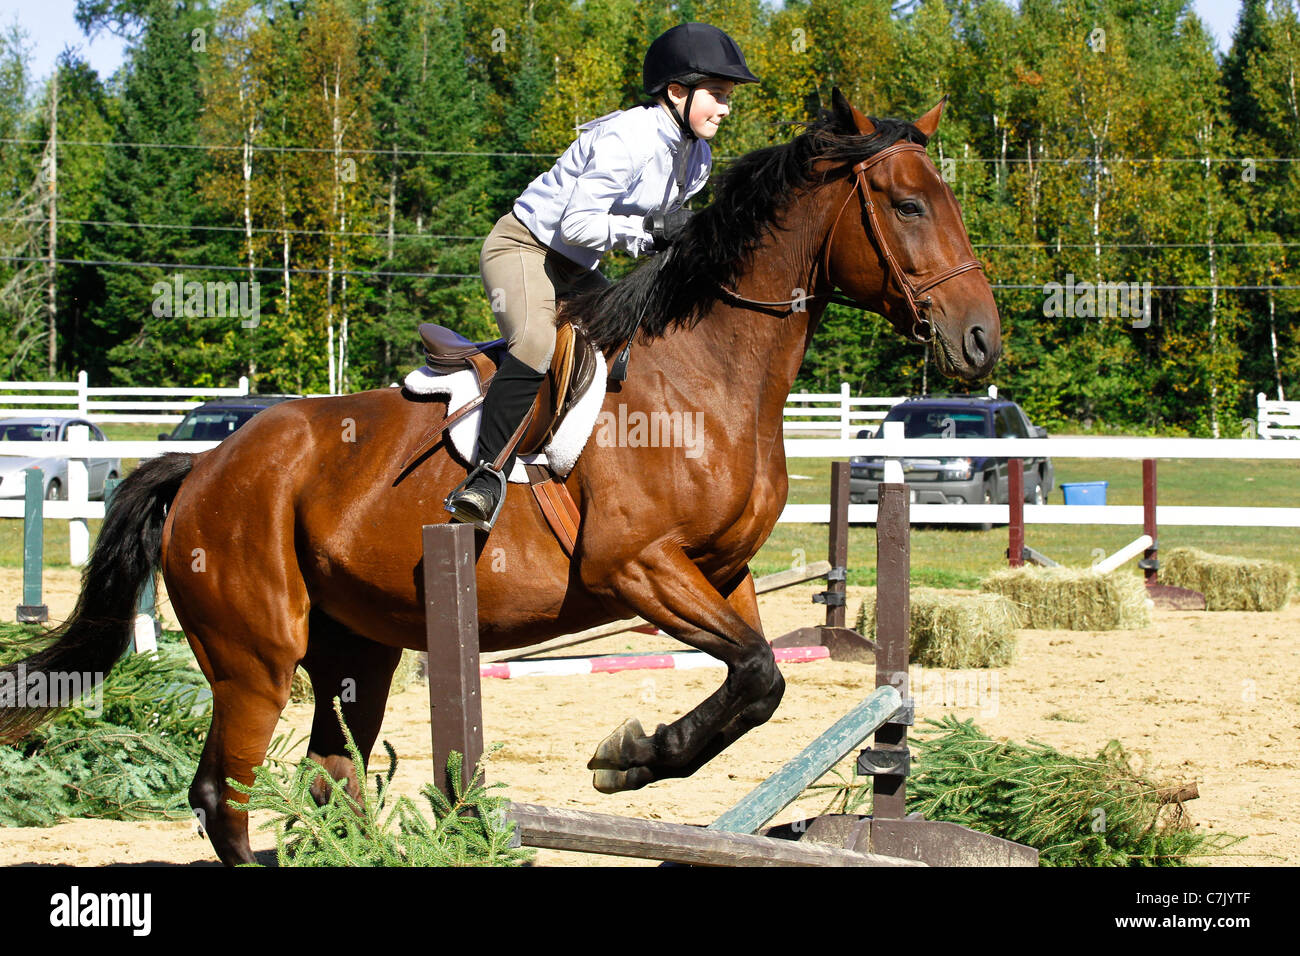 Young girl riding bay horse jumps over a cross rail at a horse show in Ontario, Canada - Stock Image